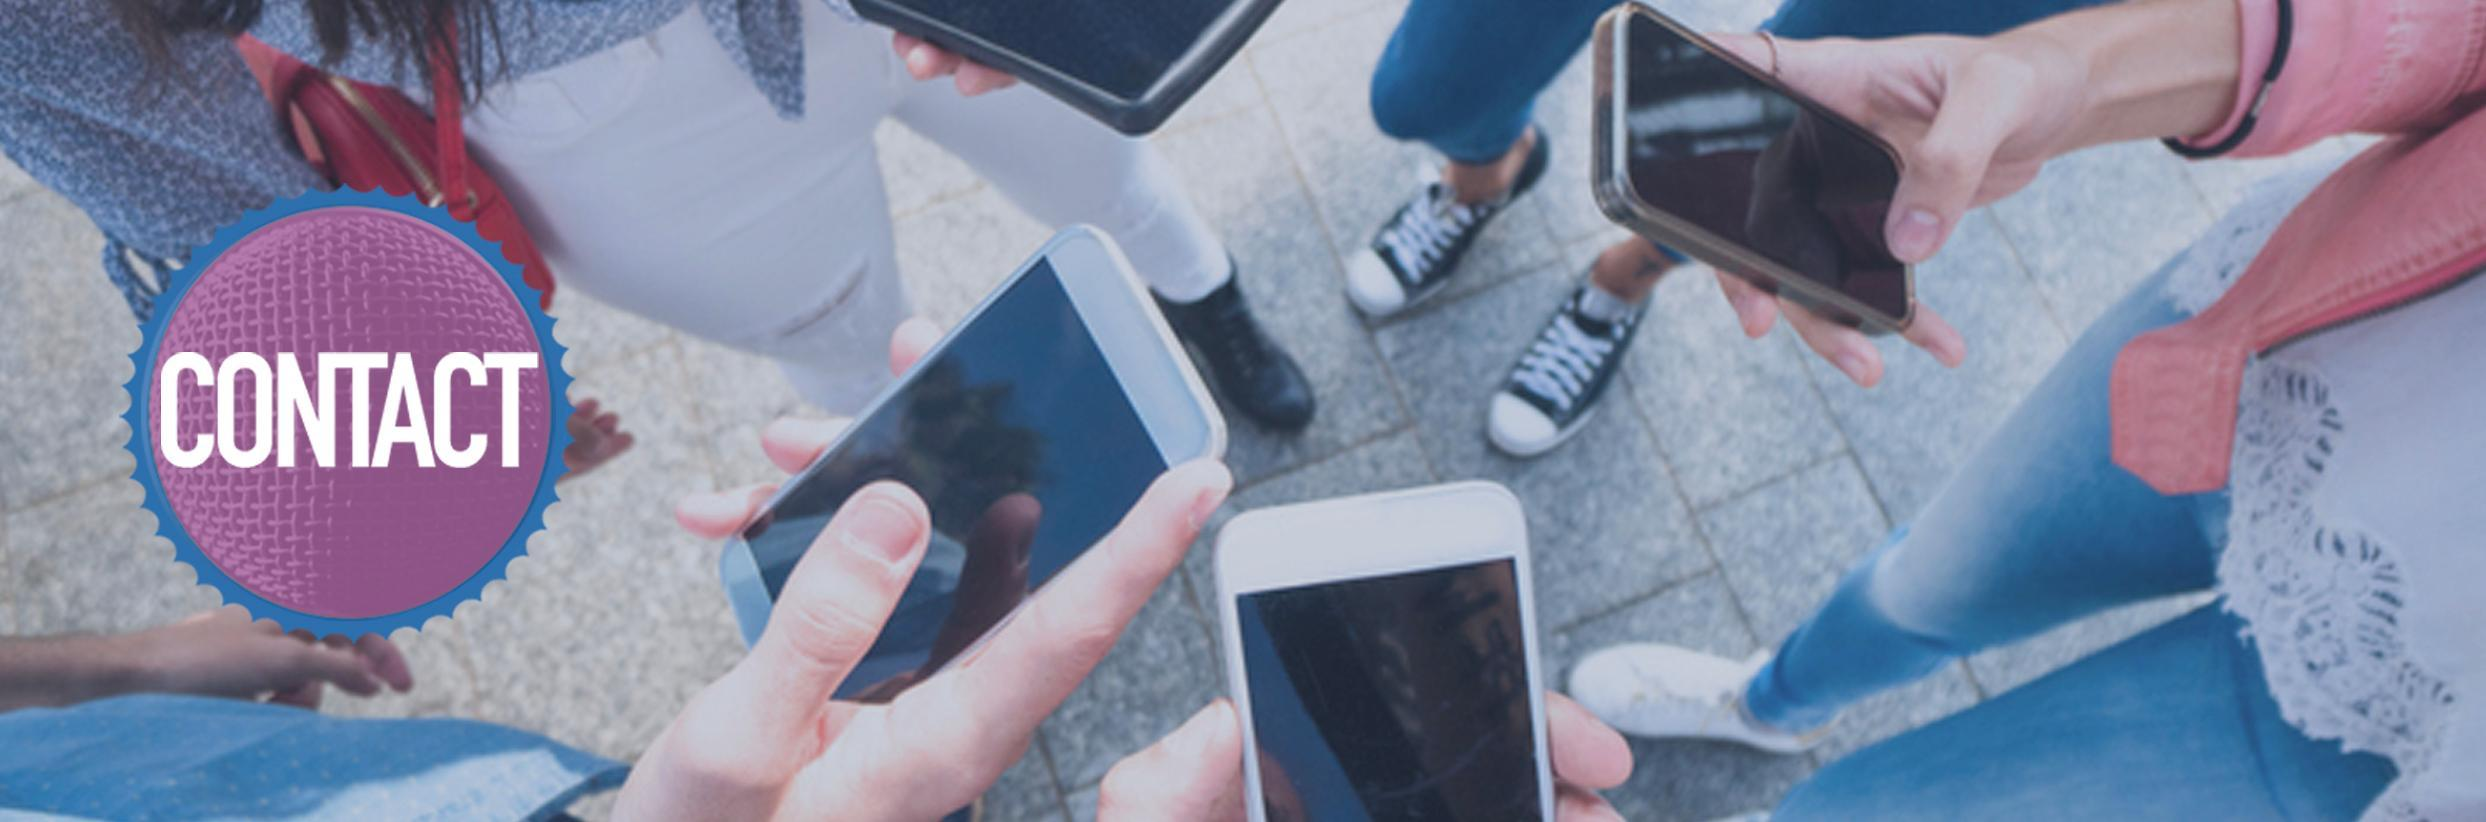 CONTACT students with cell phones